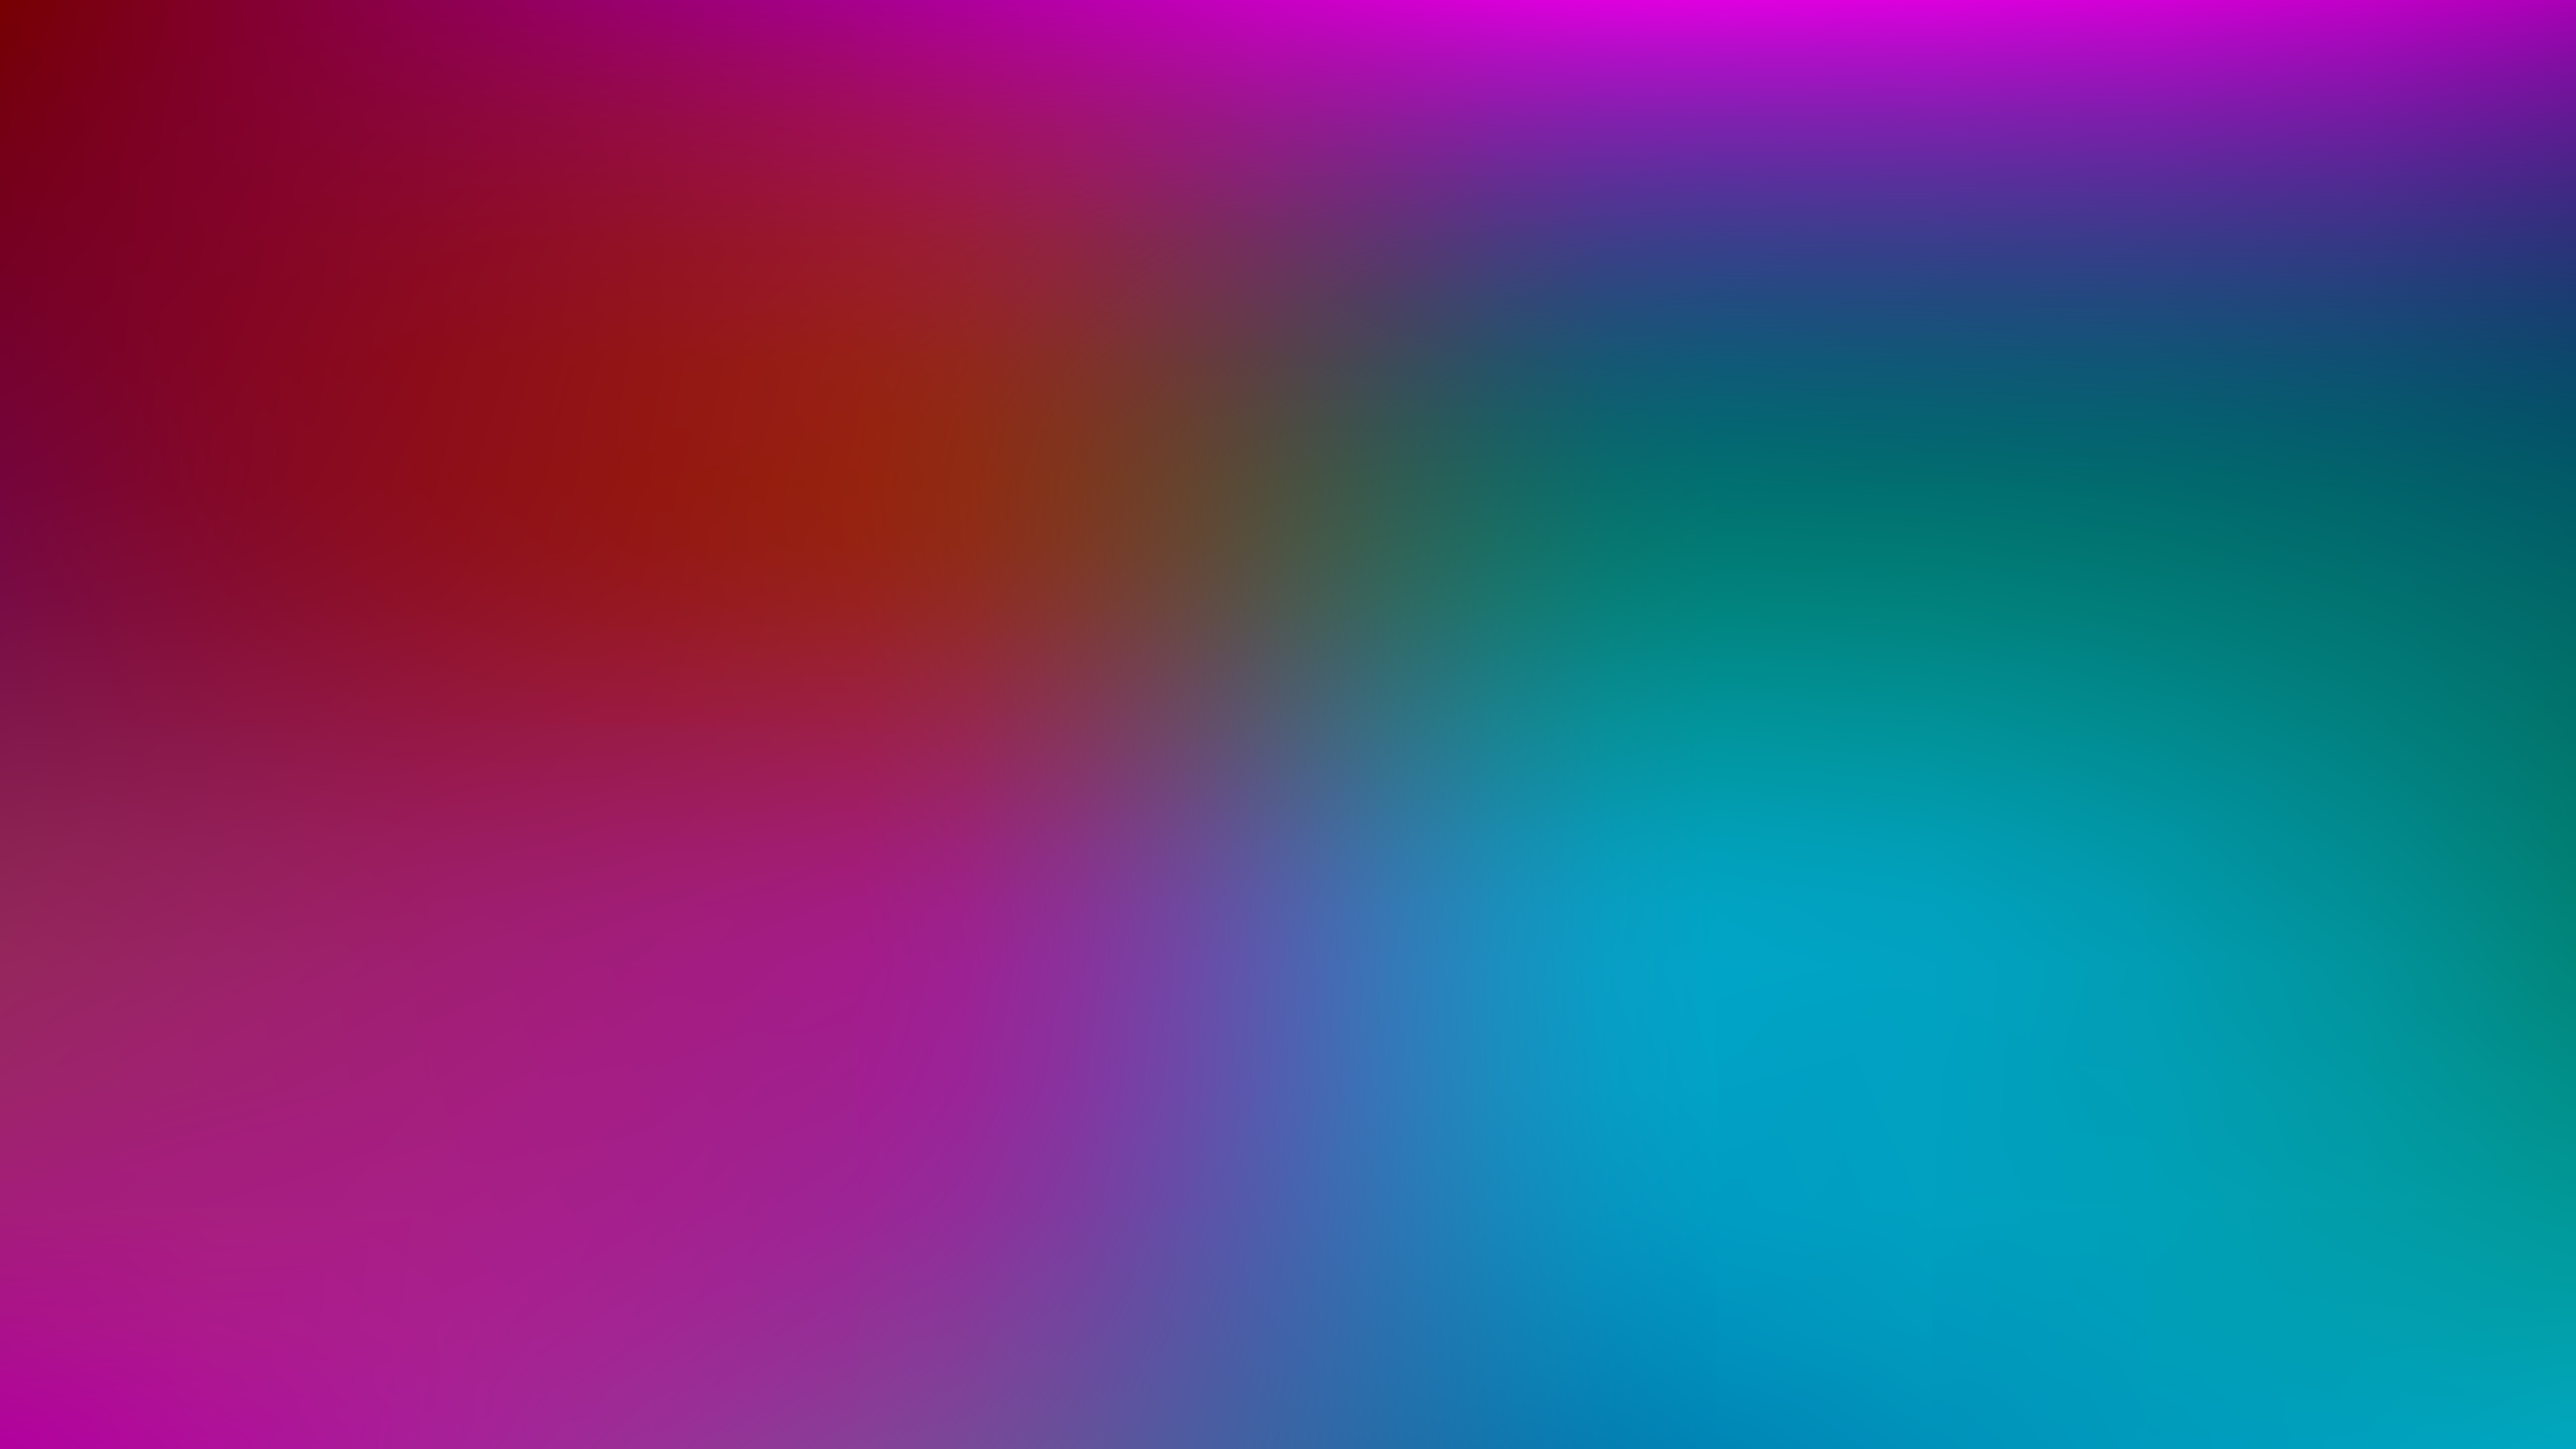 Blue and Purple PowerPoint Background Design 8000x4500